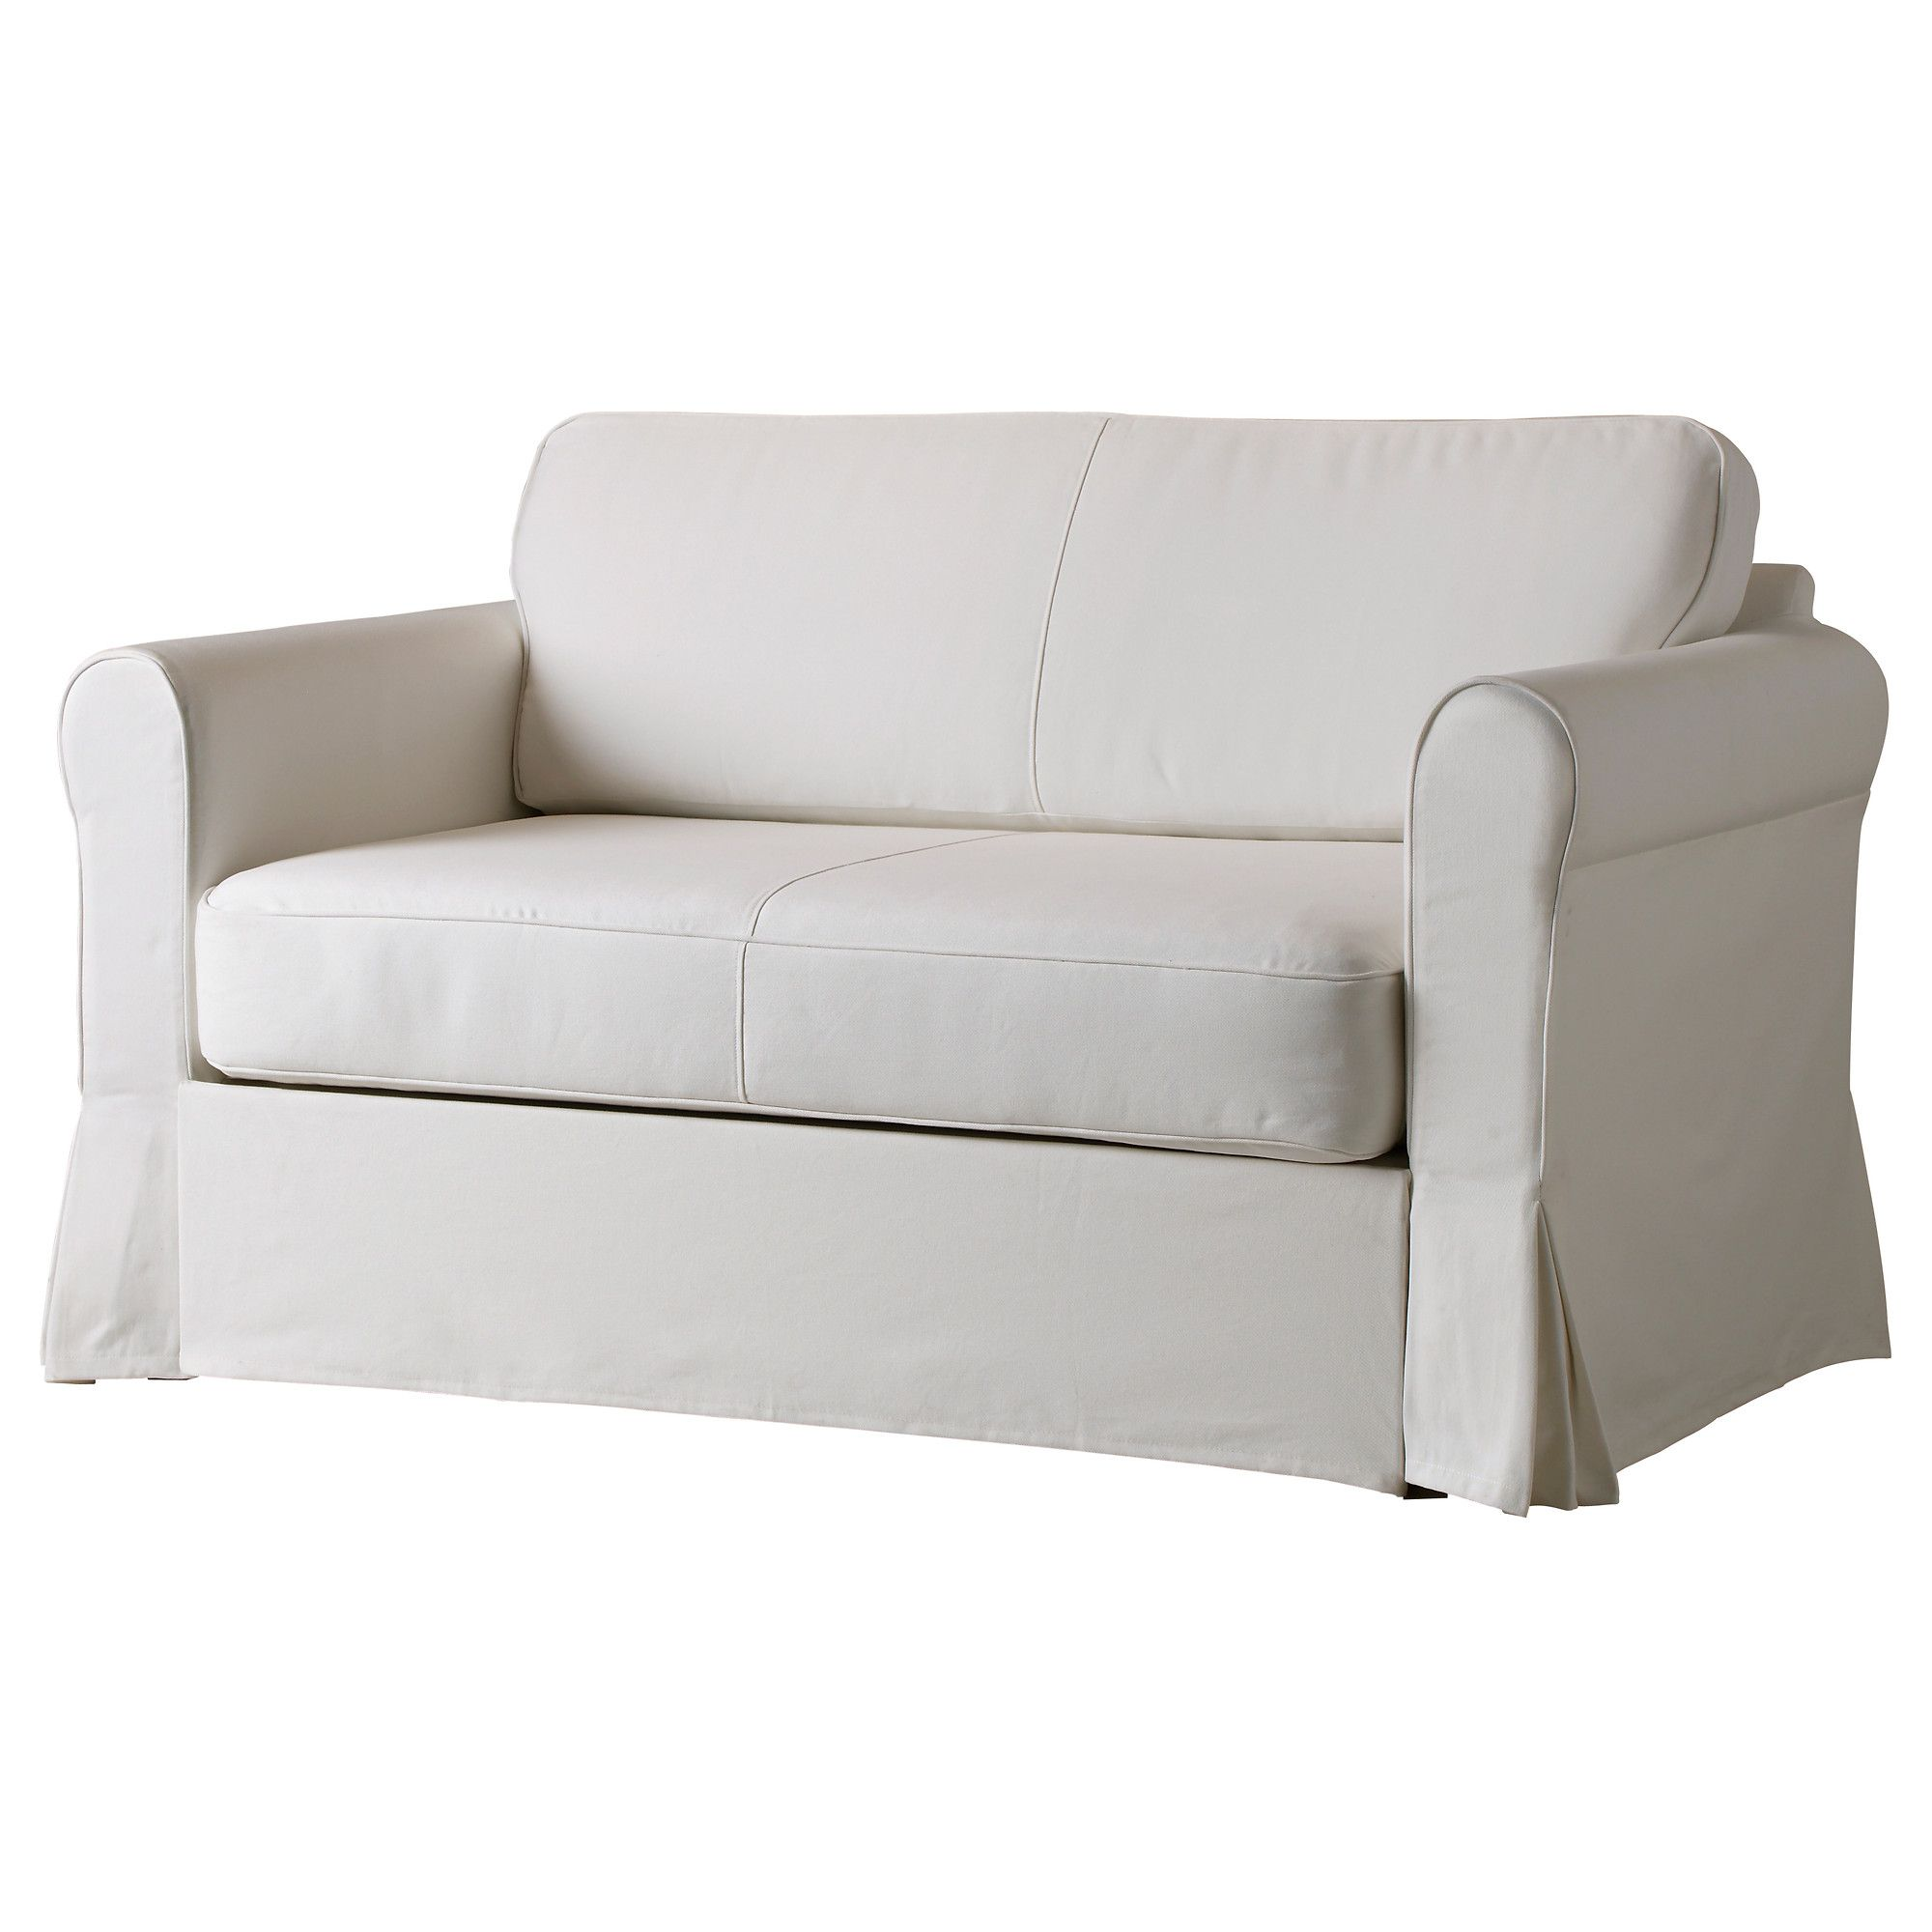 HAGALUND Two seat sofa bed Blekinge white IKEA